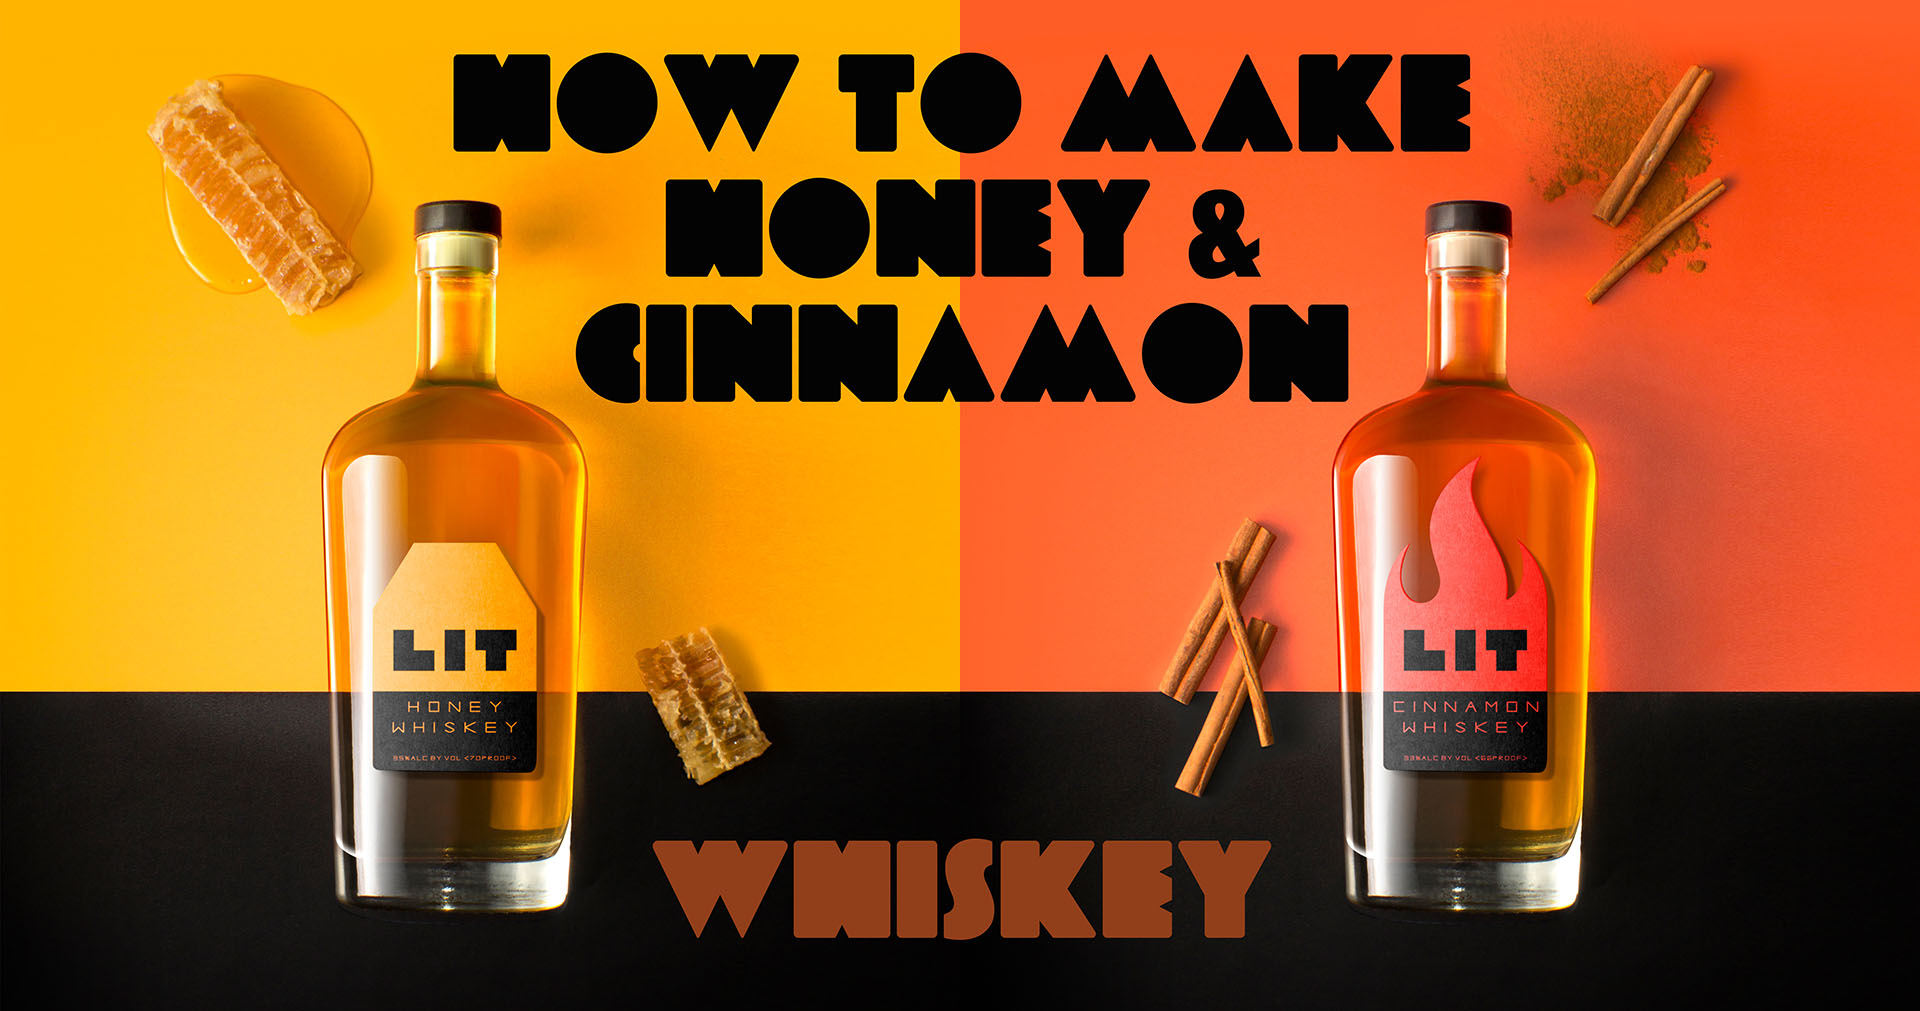 How To Make Honey Whiskey & Cinnamon Whiskey